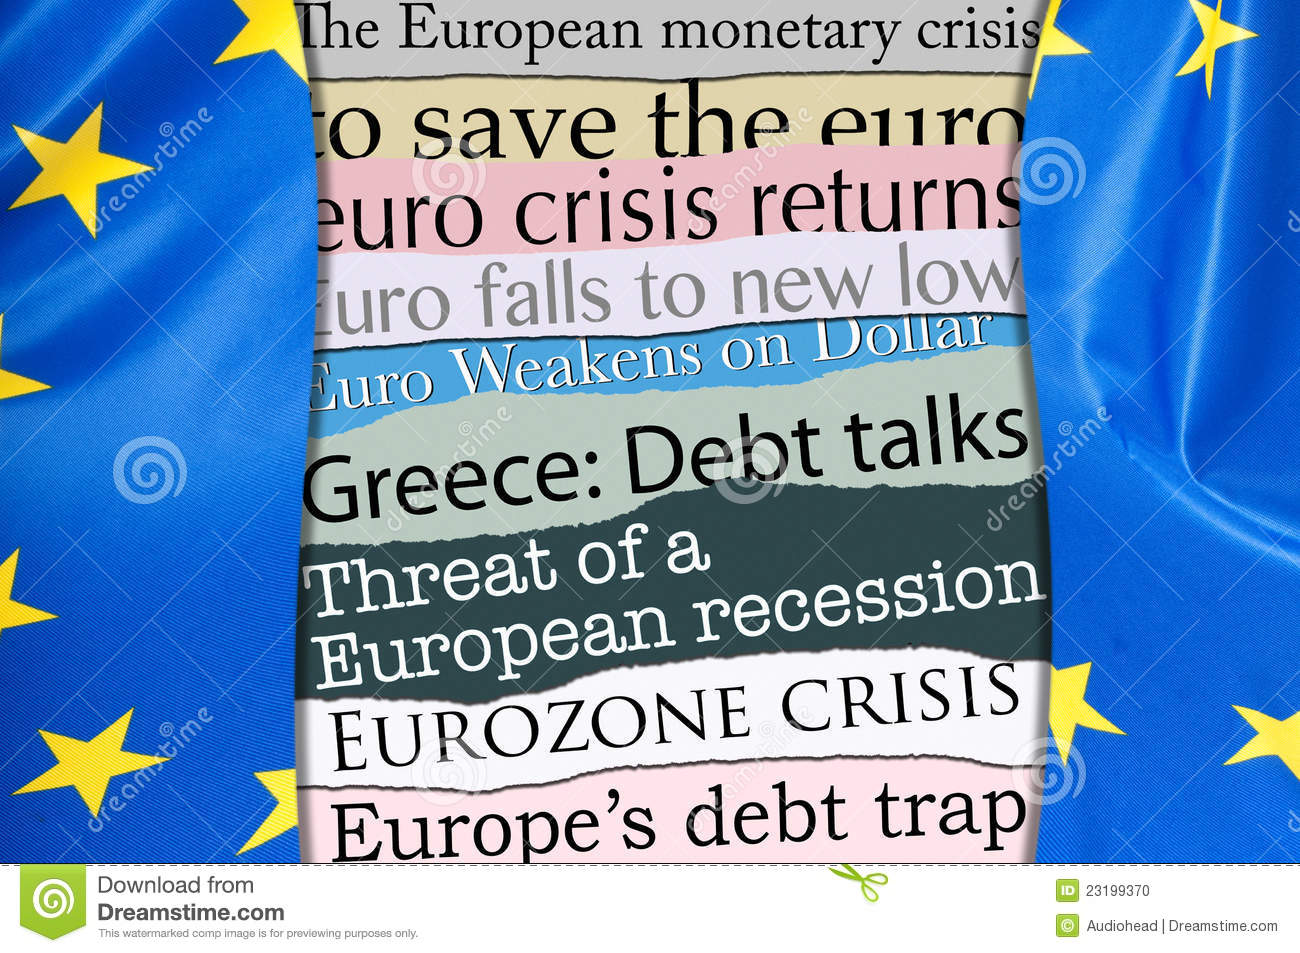 The Economic Crisis Hits Eastern Europe